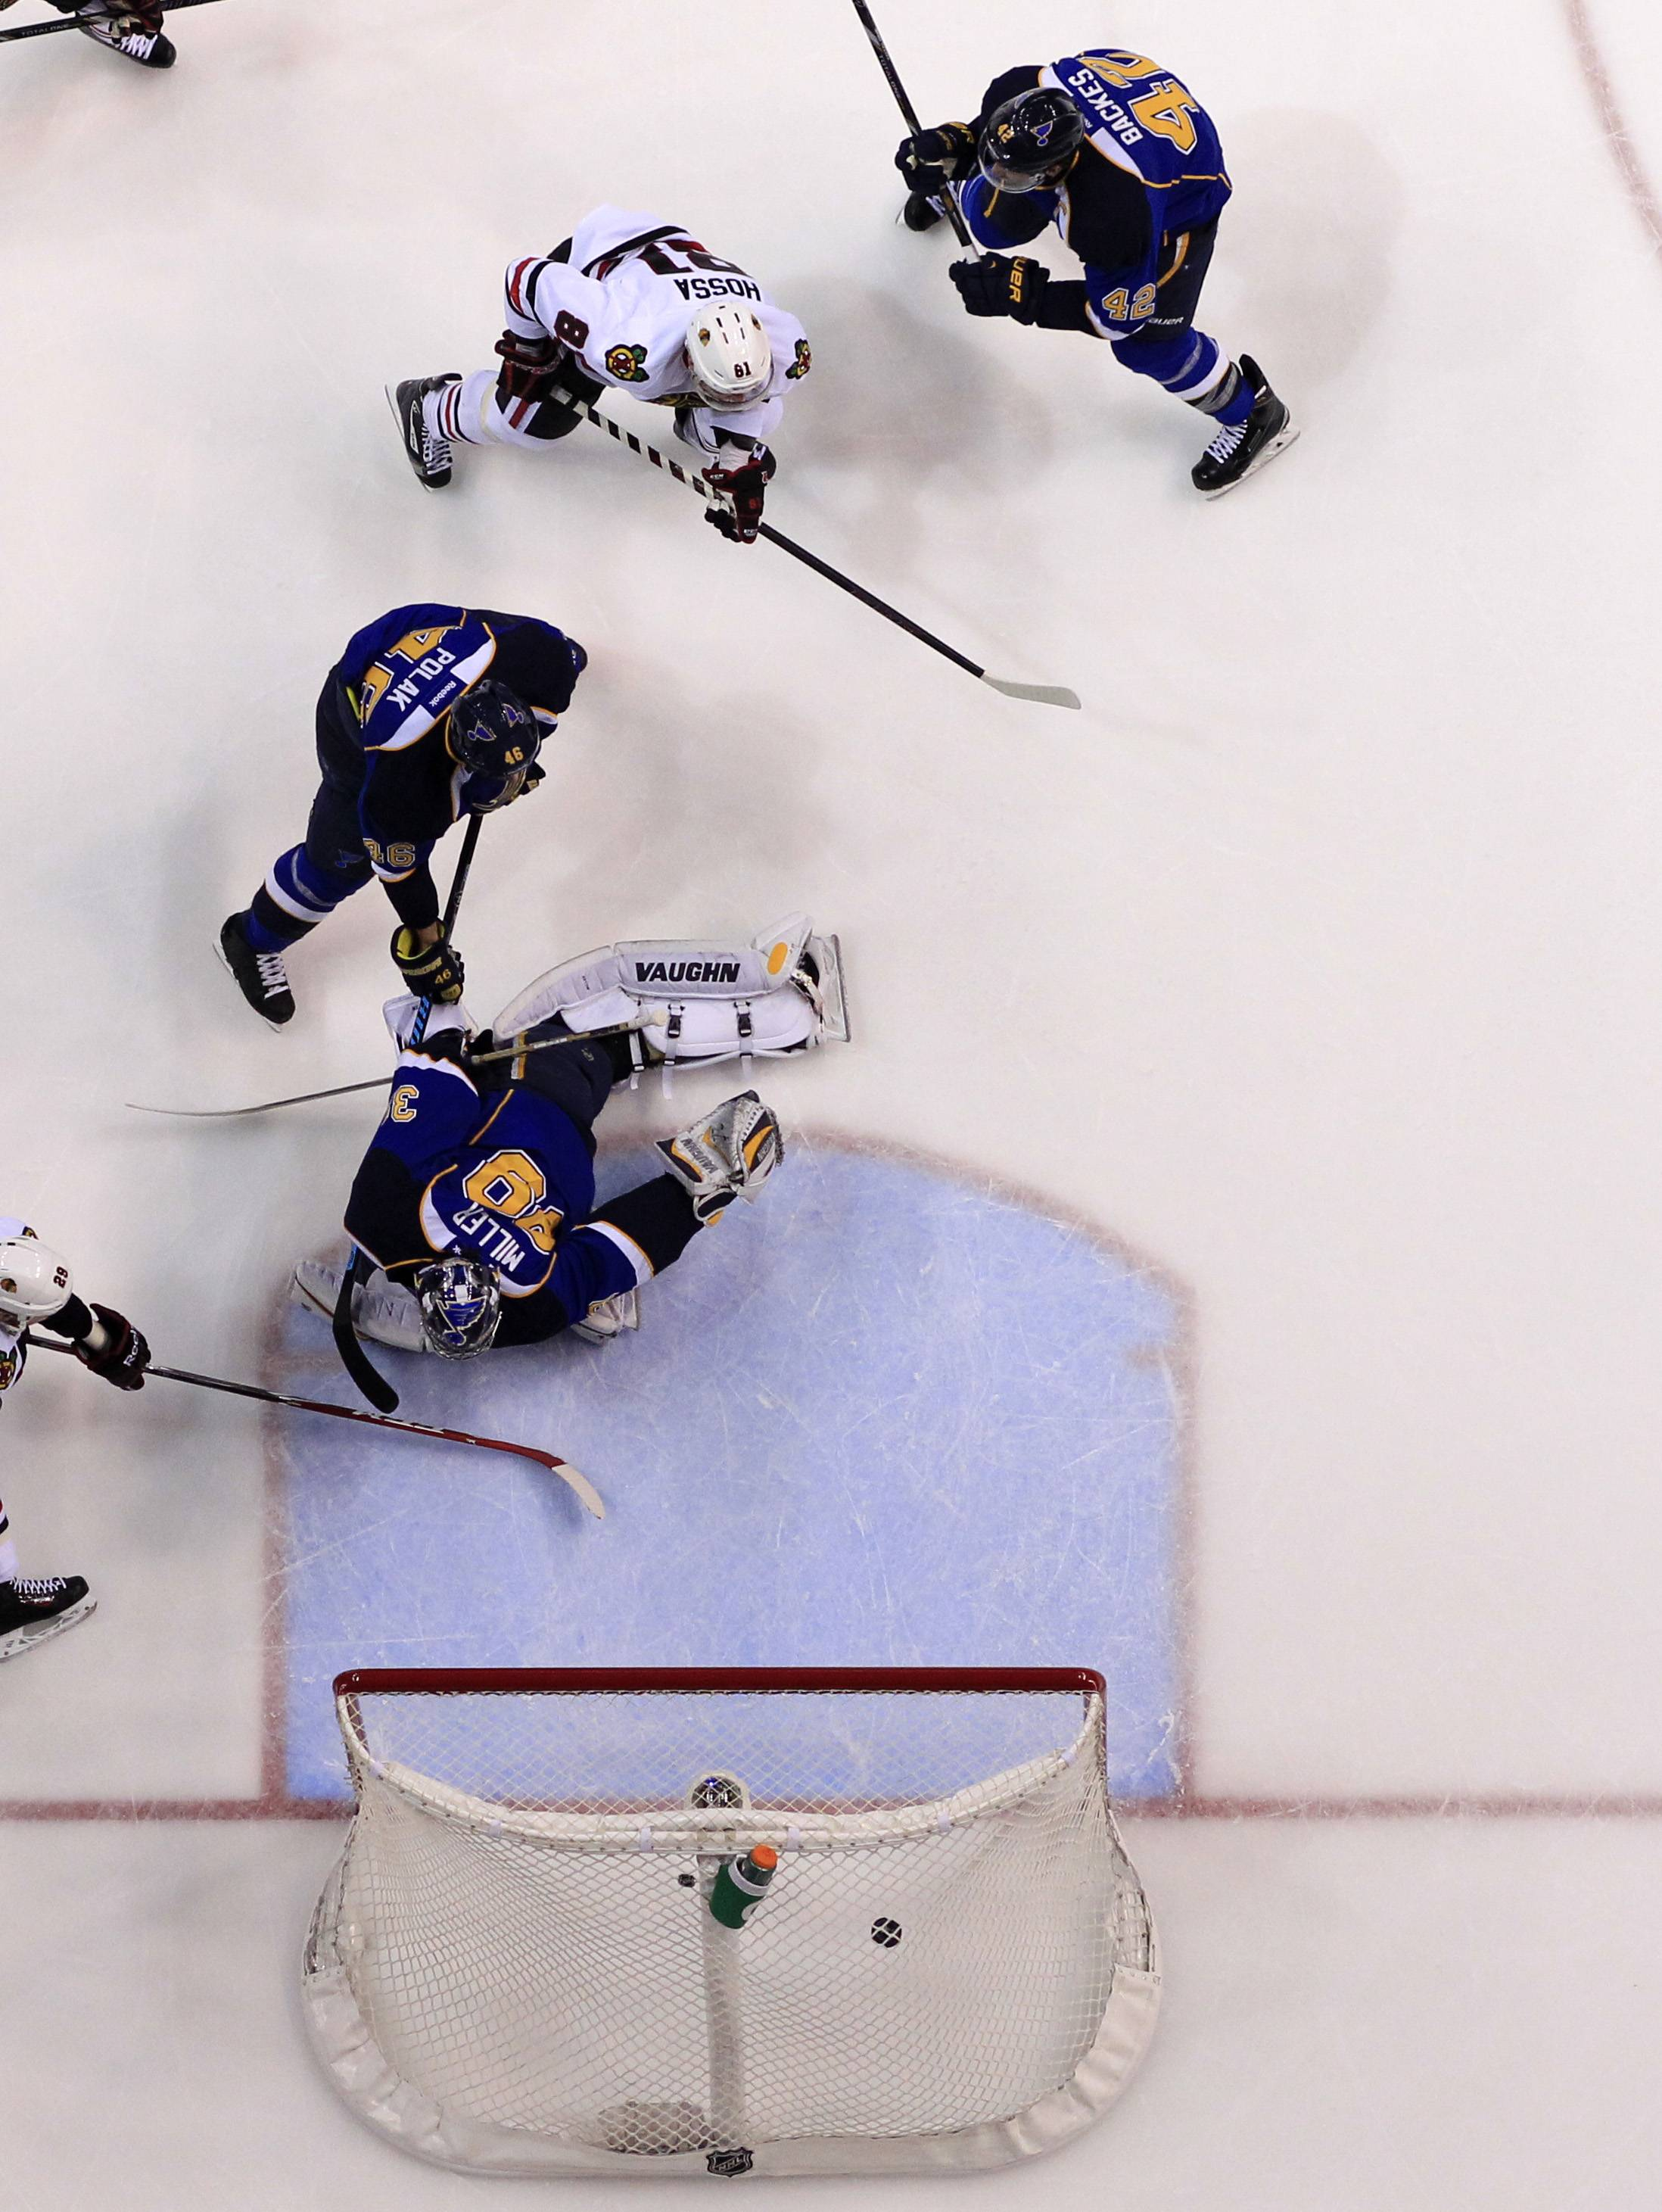 Chicago Blackhawks' Marian Hossa, top left, of Slovakia, scores past St. Louis Blues goalie Ryan Miller, bottom, Roman Polak, of the Czech Republic, and David Backes, top right, during the first period.